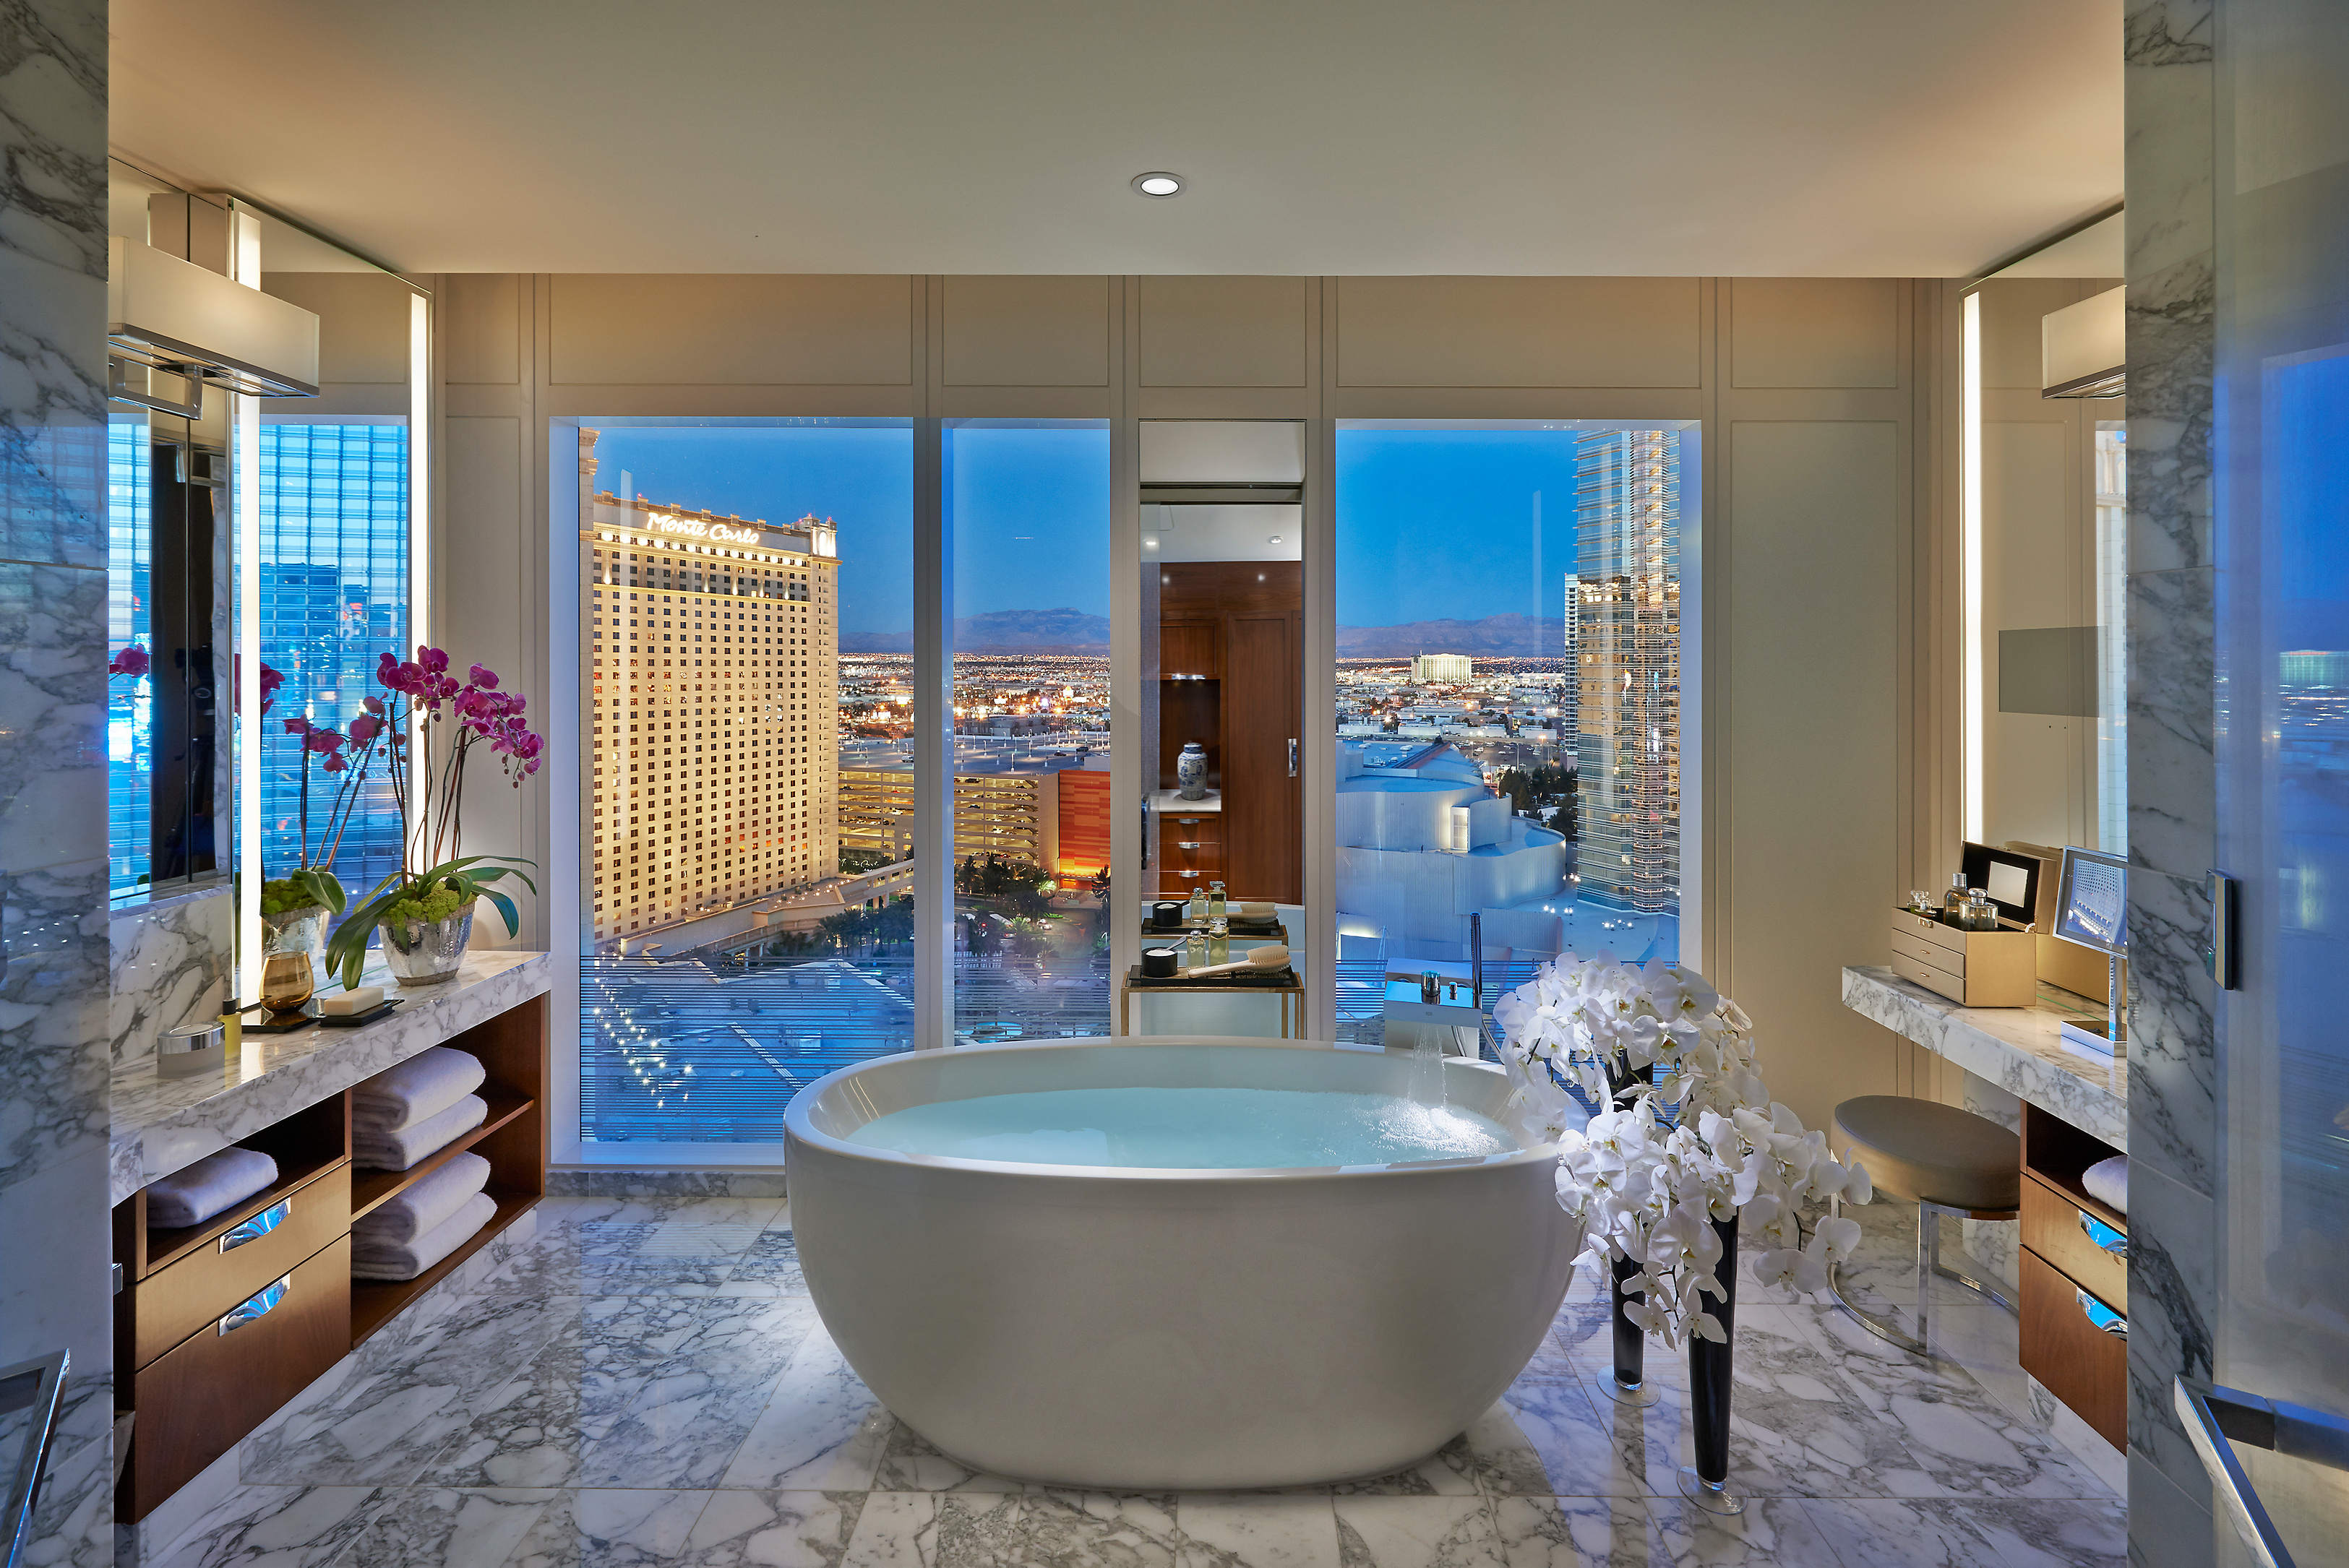 Las Vegas Top Hotel Suites | Las Vegas Hotels and more.